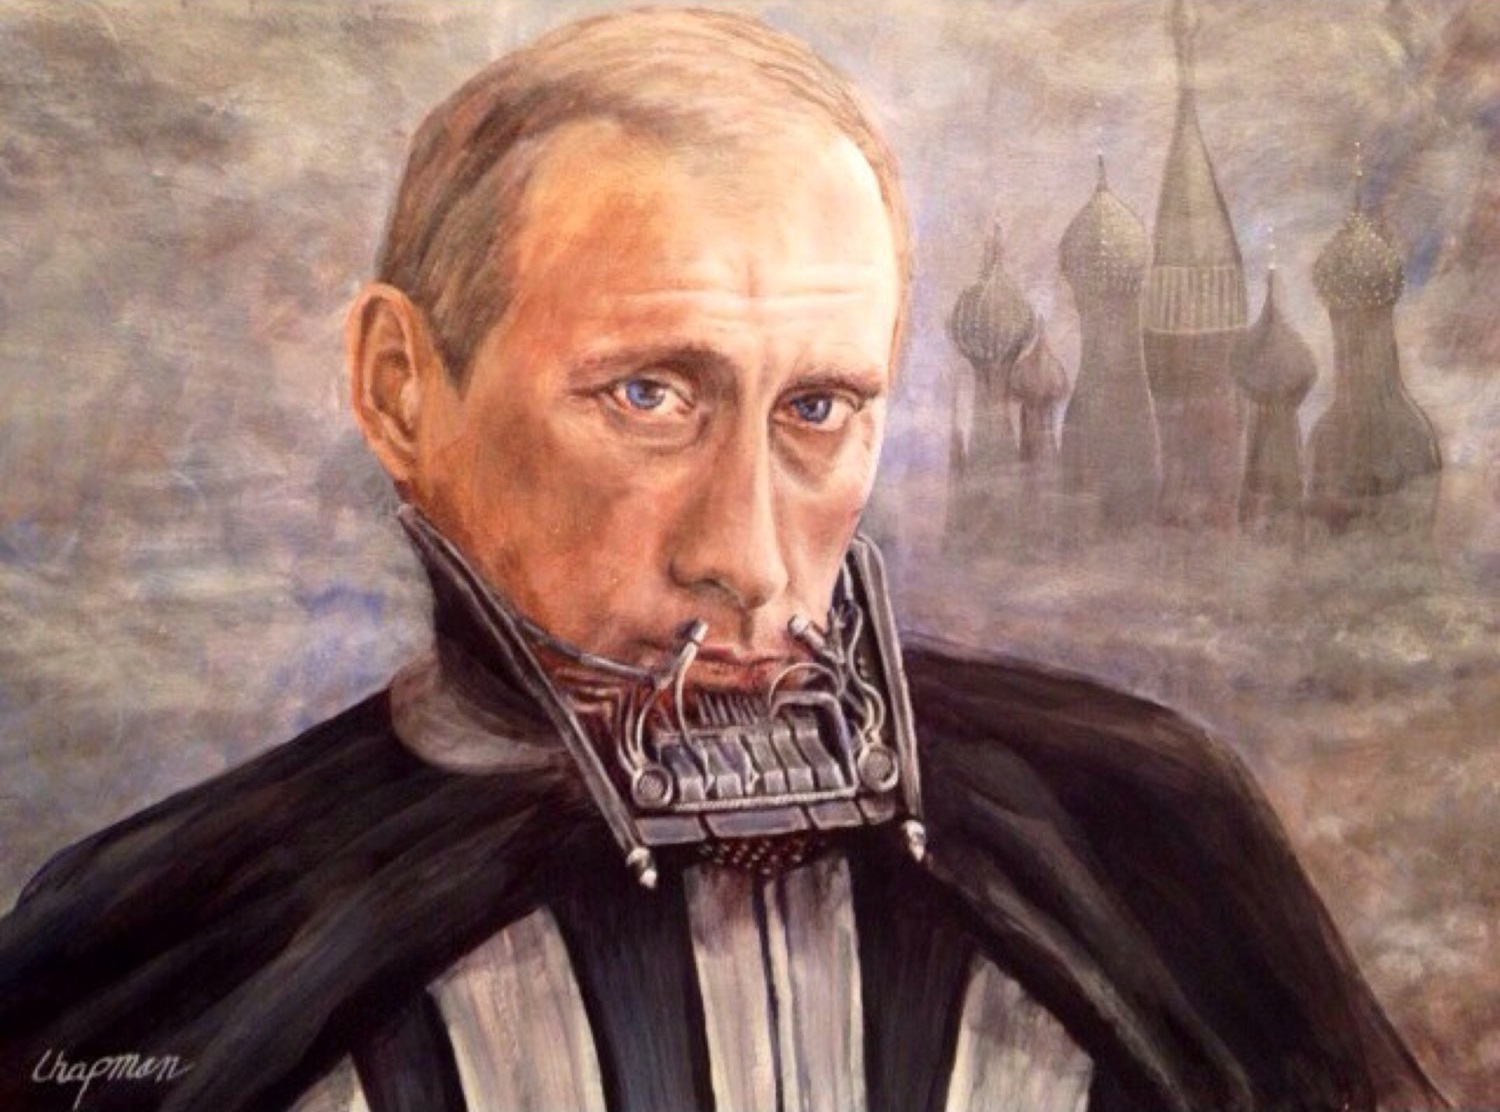 darthputin.jpg